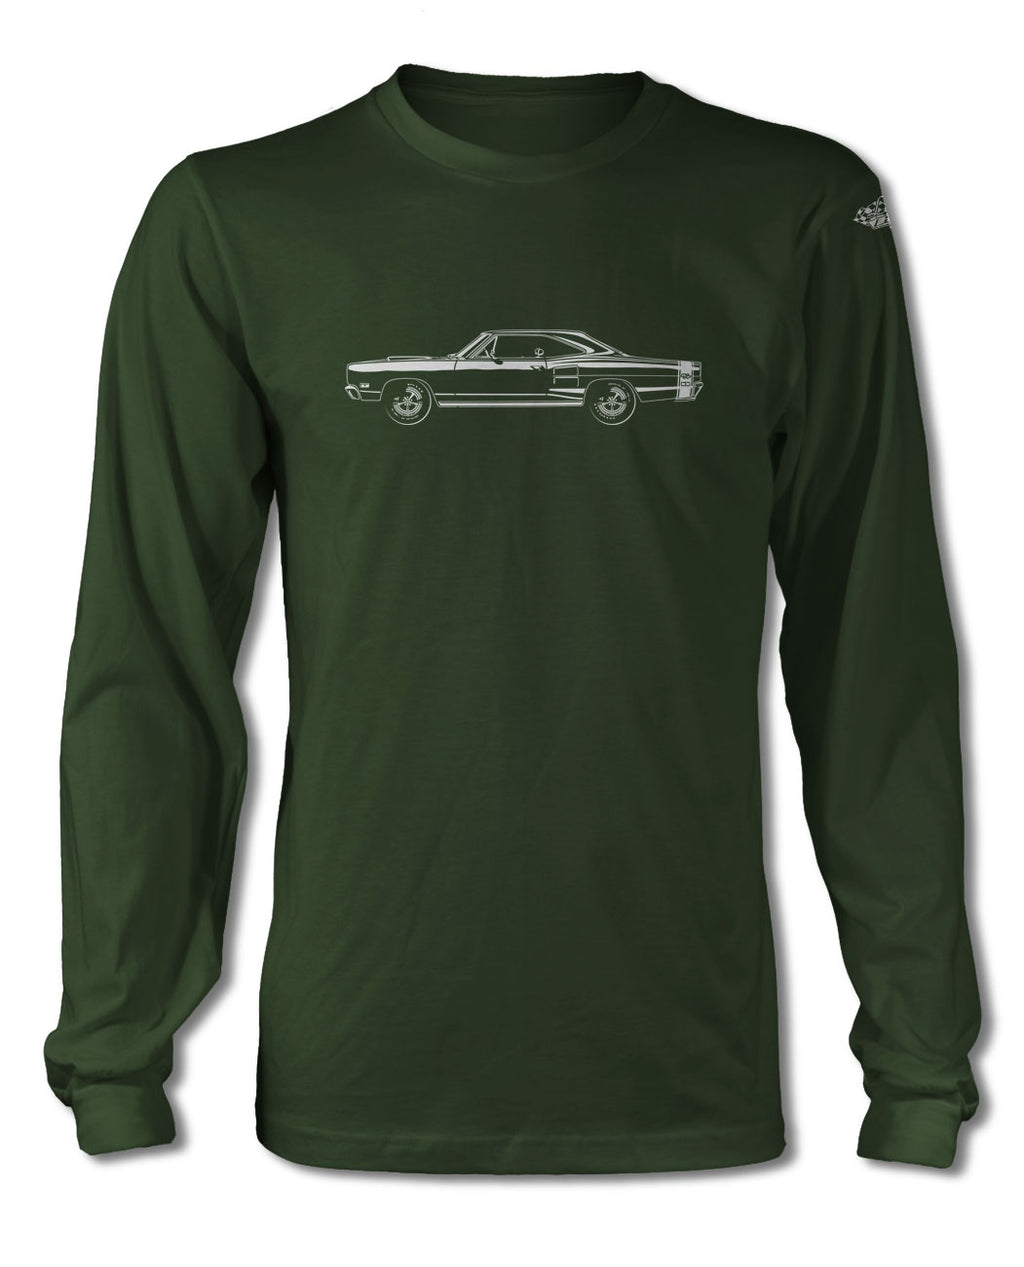 1969 Dodge Coronet RT Coupe with Stripes T-Shirt - Long Sleeves - Side View